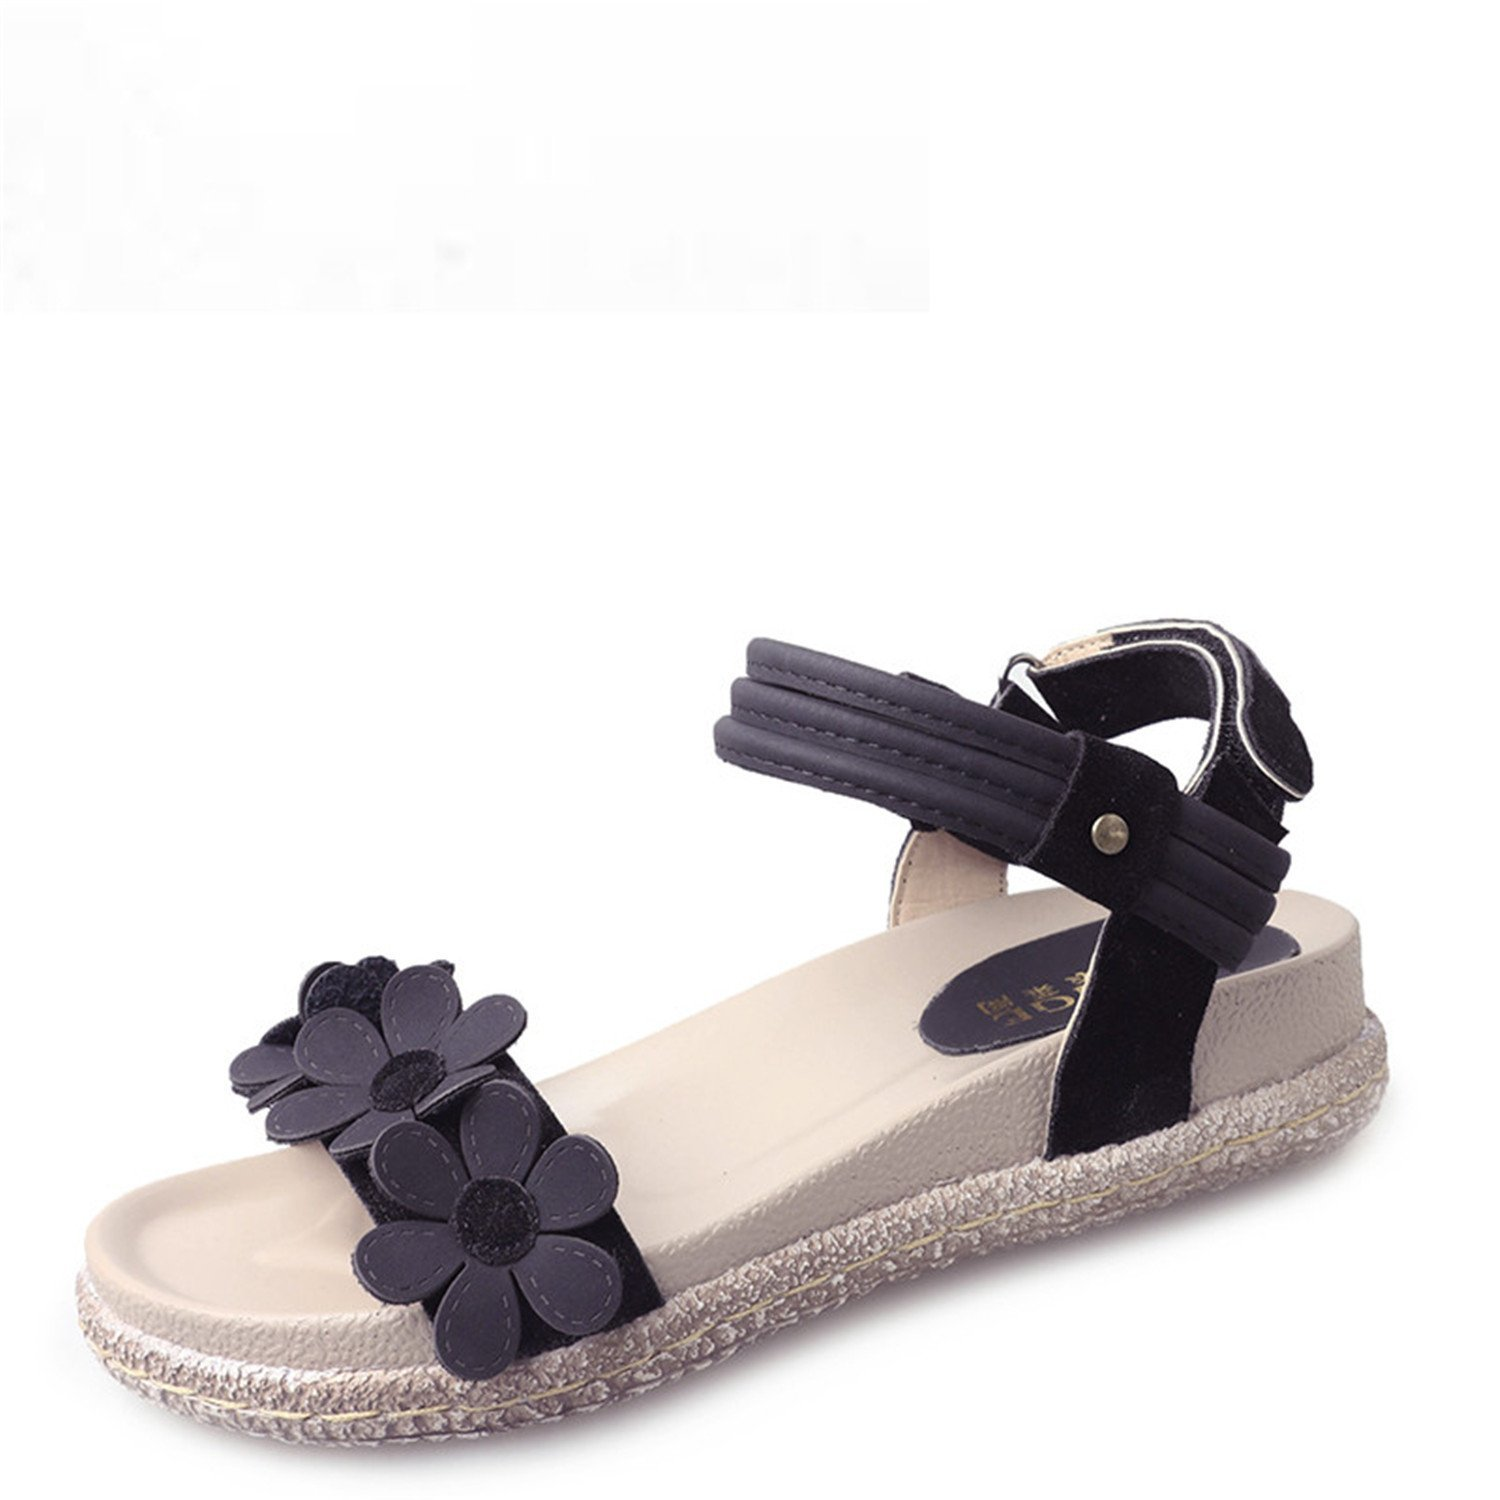 a14e1e40a4 Get Quotations · Feilongzaitianba Summer Ankle Wrap Sandals Woman Open Toe  Shoes Women Velcro Flower Women Sandals Flat Sandals